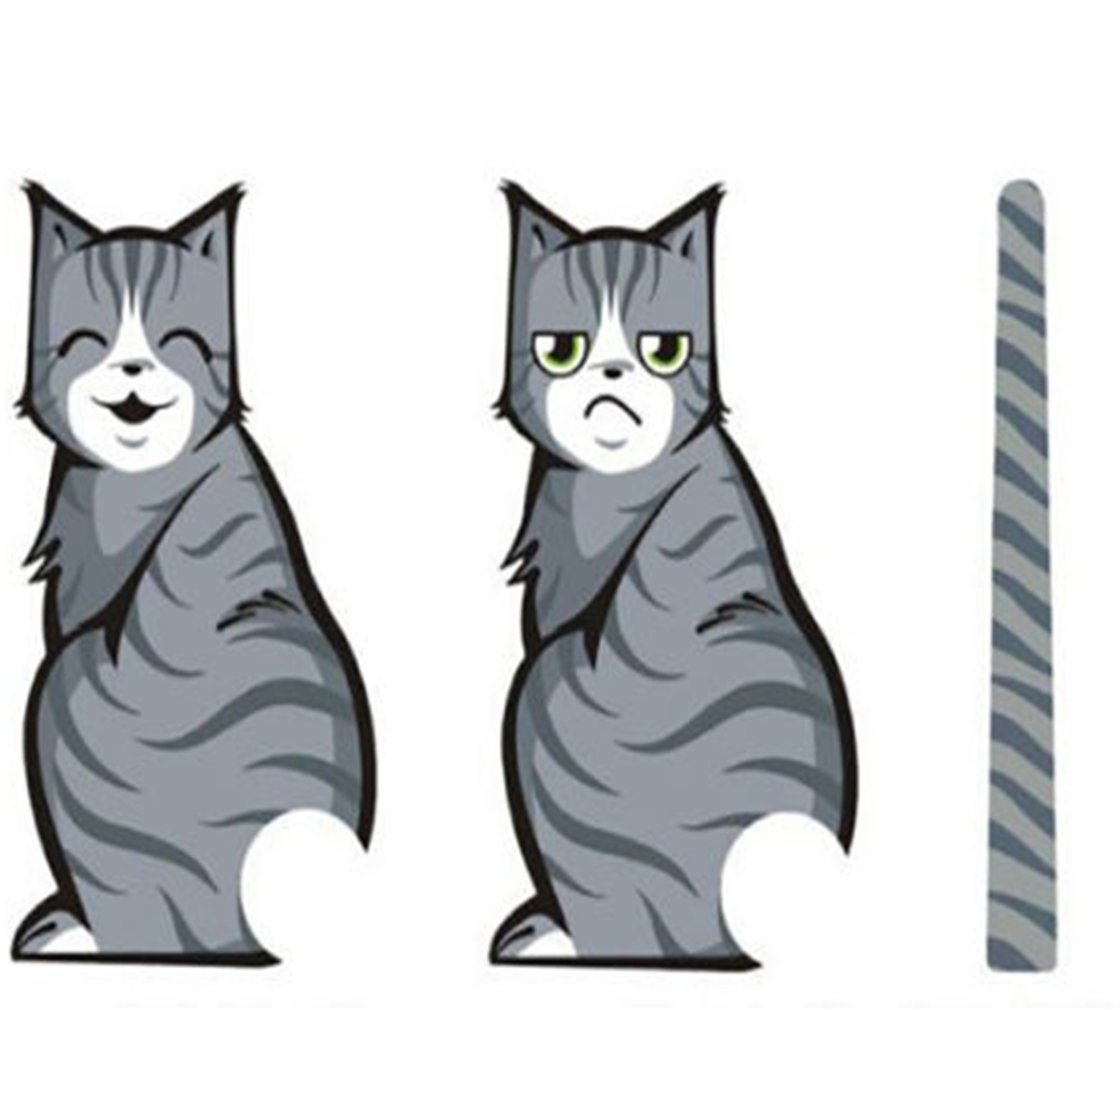 TraveT Funny Cat Car Window Moving Tail Stickers Decals